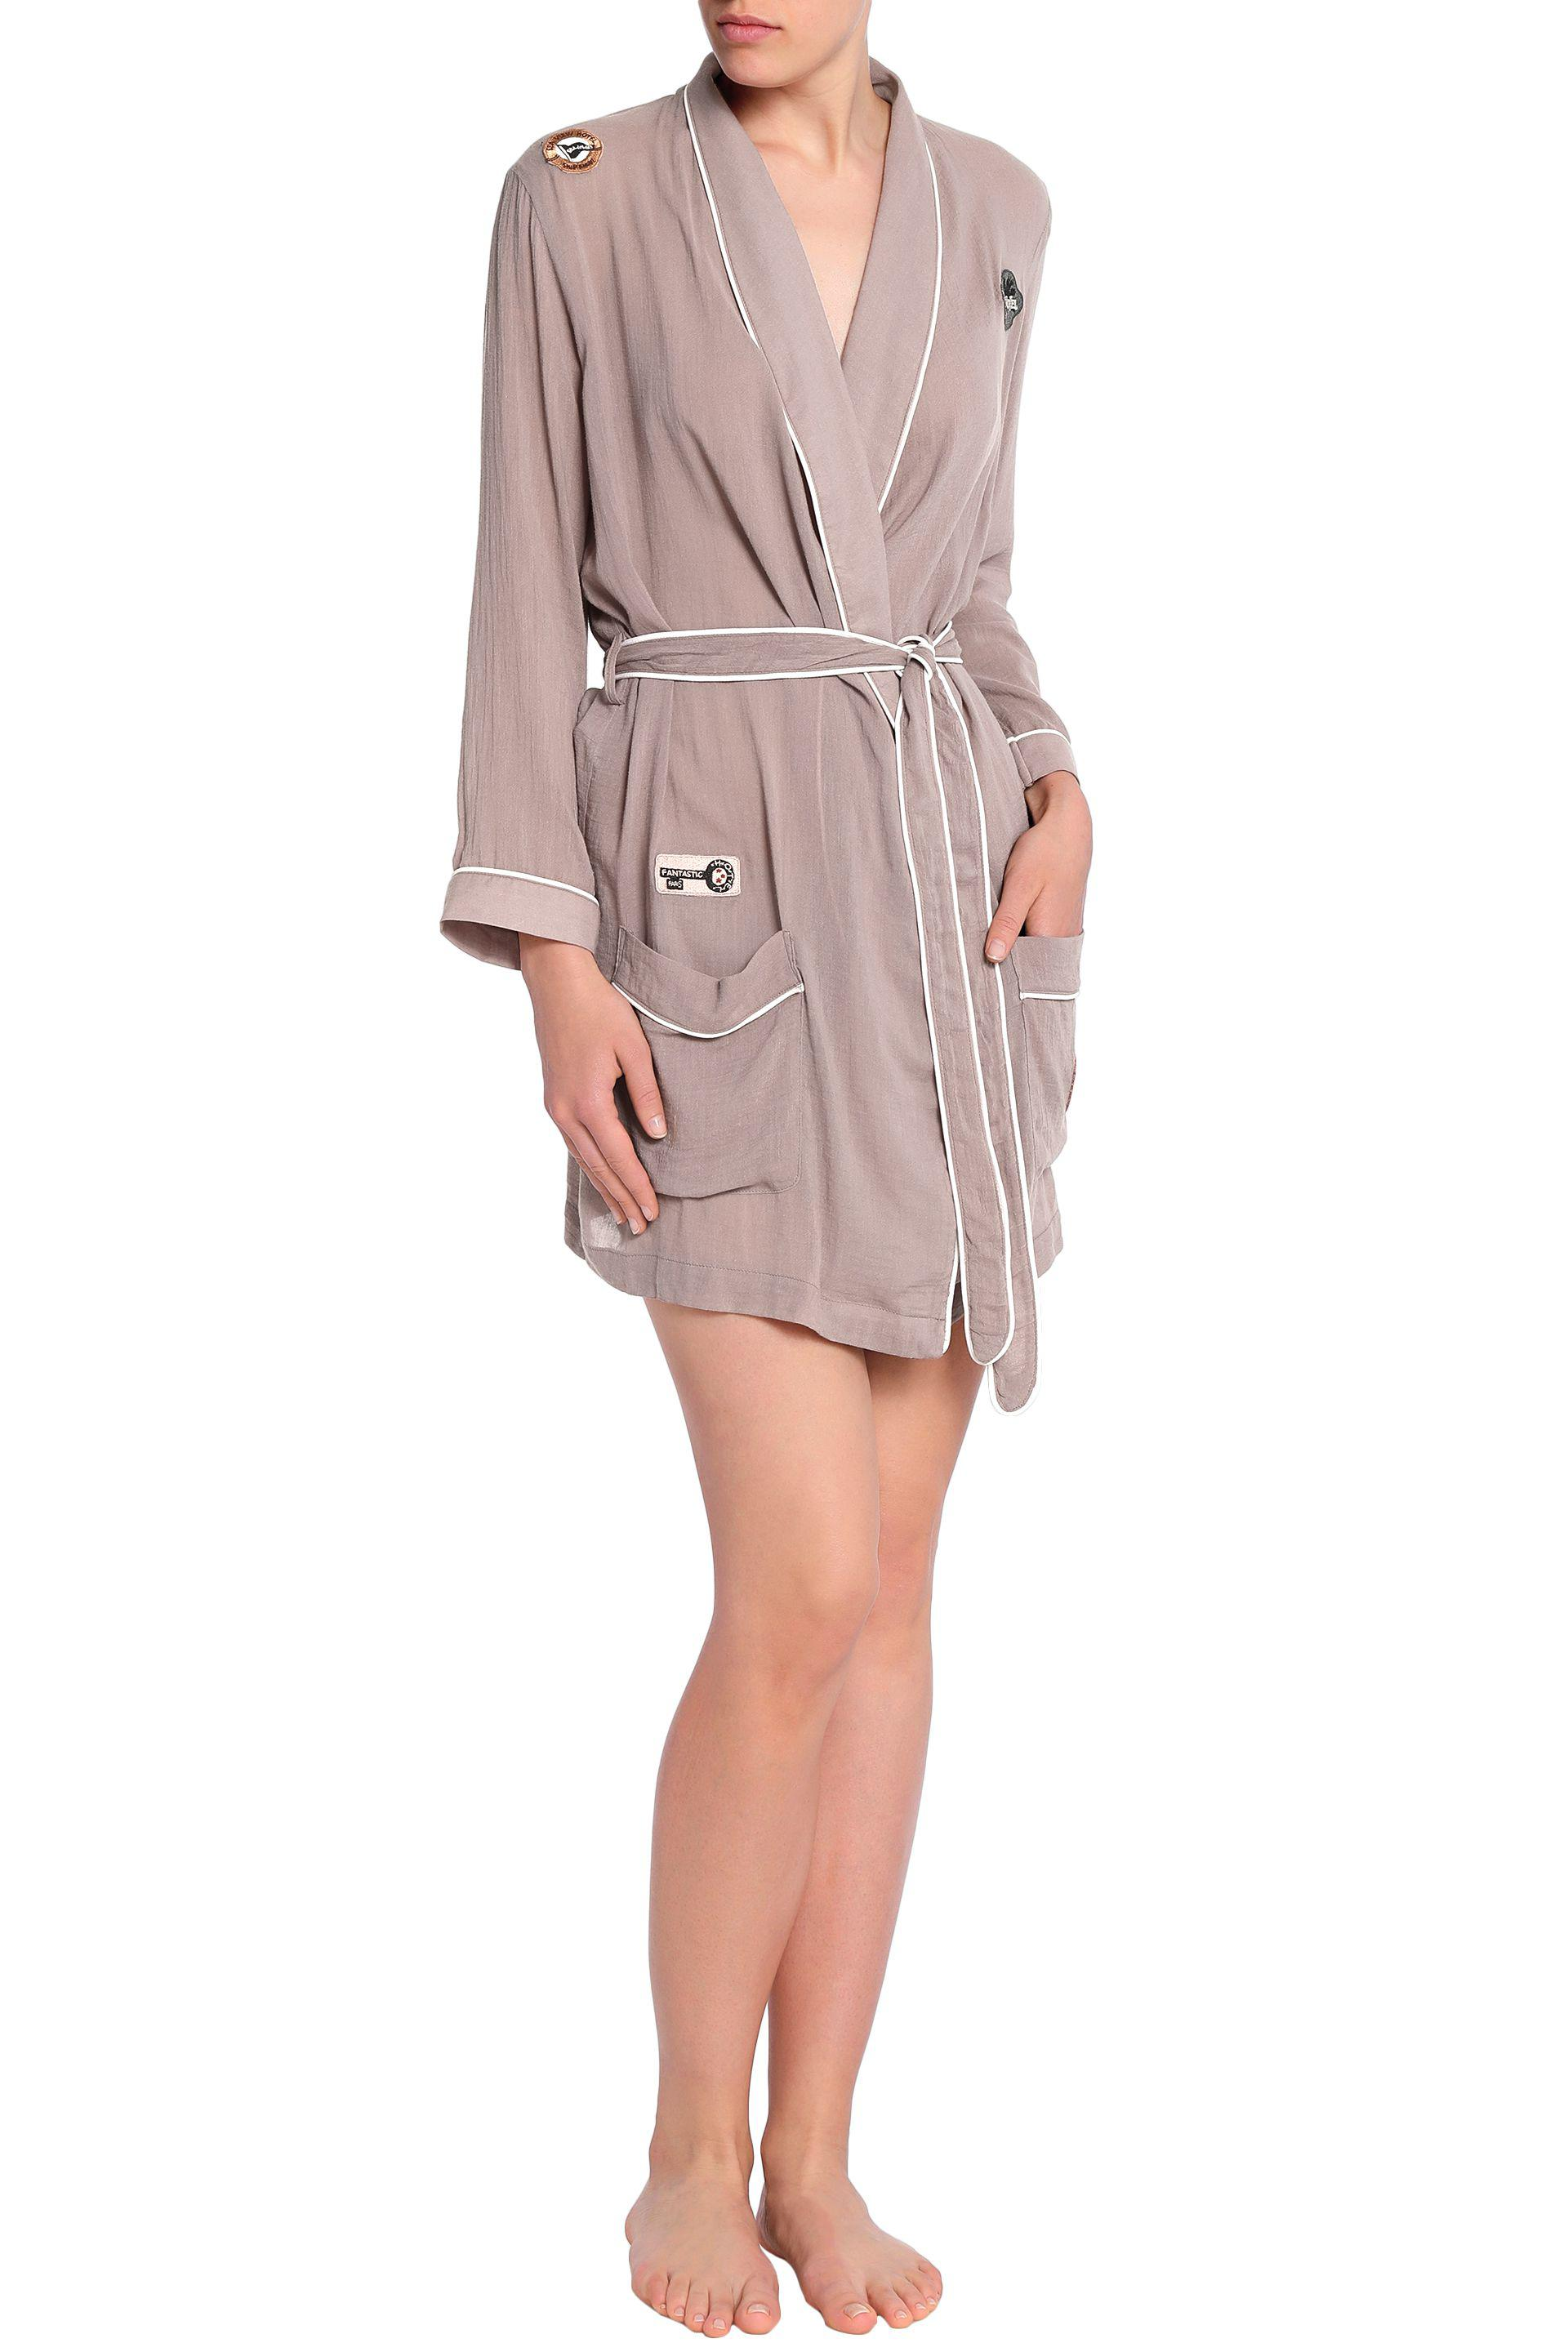 Love Stories Woman Appliquéd Cotton-voile Robe Taupe Size XL Love Stories With Credit Card CQsRwT62Rk